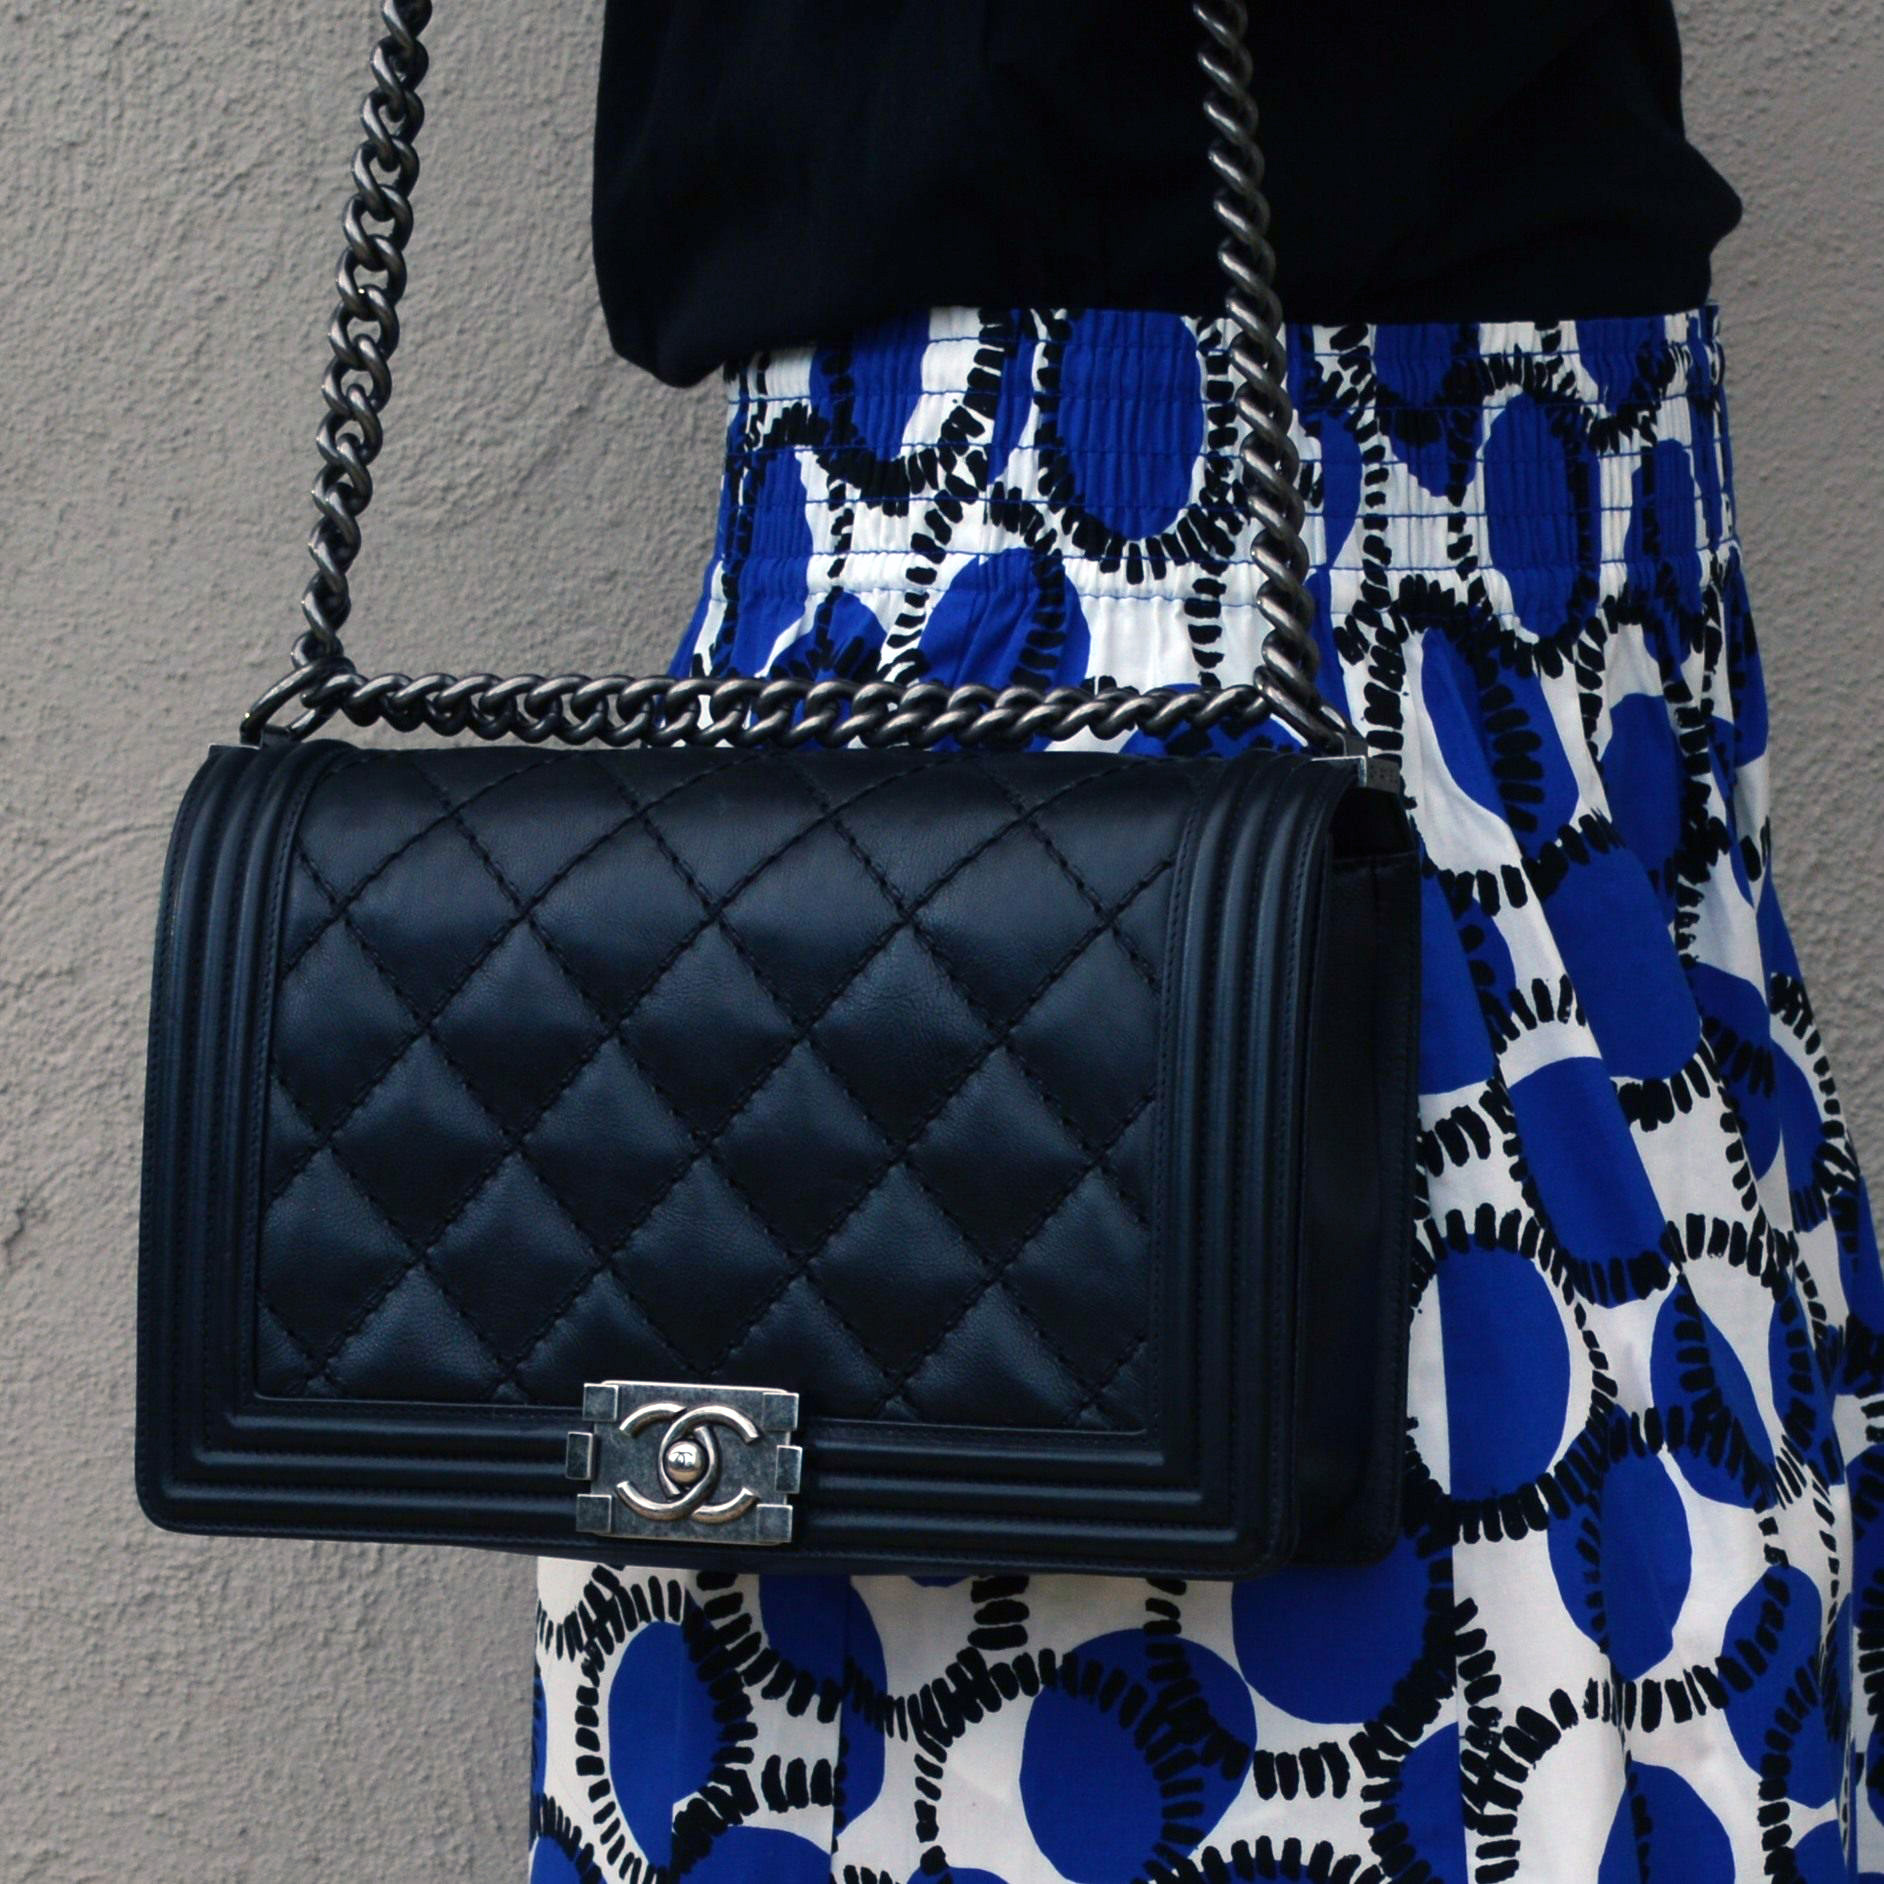 How to sell an investment handbag